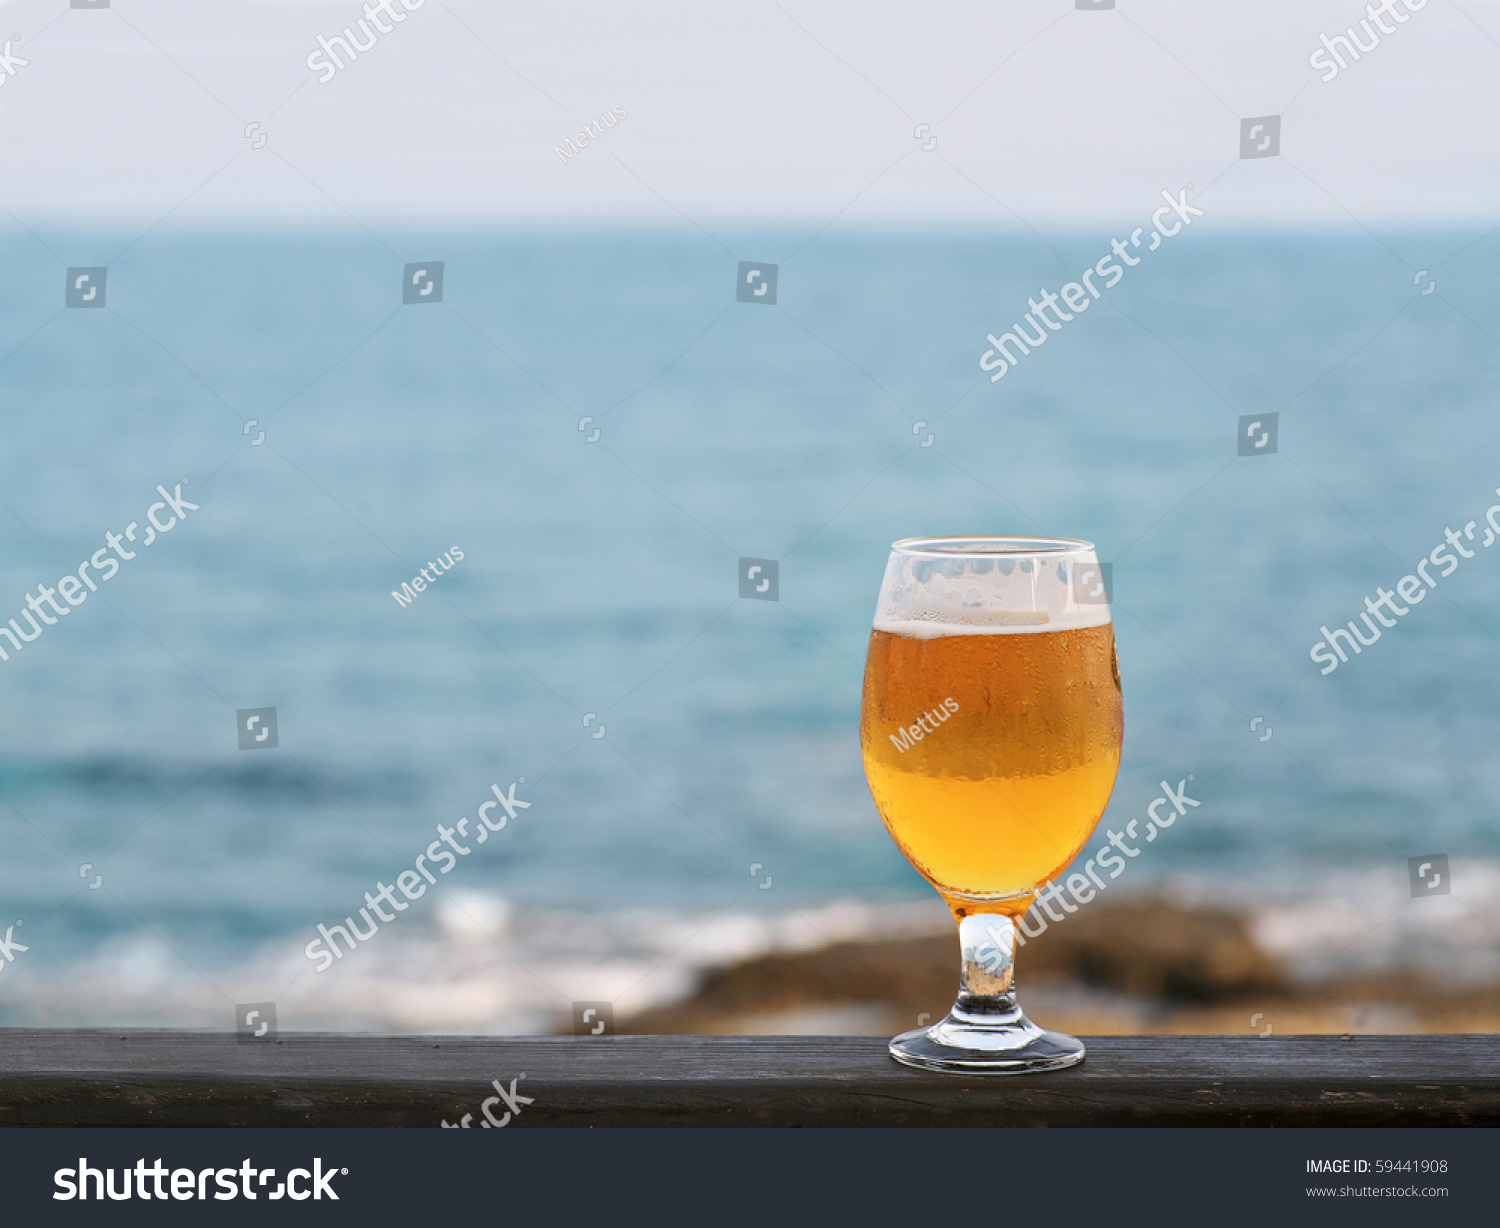 One glass of beer against sea and coastline a lot of space for text. Glas of beer on wooden fence of beach bar. Copy-space. Relaxation Concept. A Lot of Space for Text.